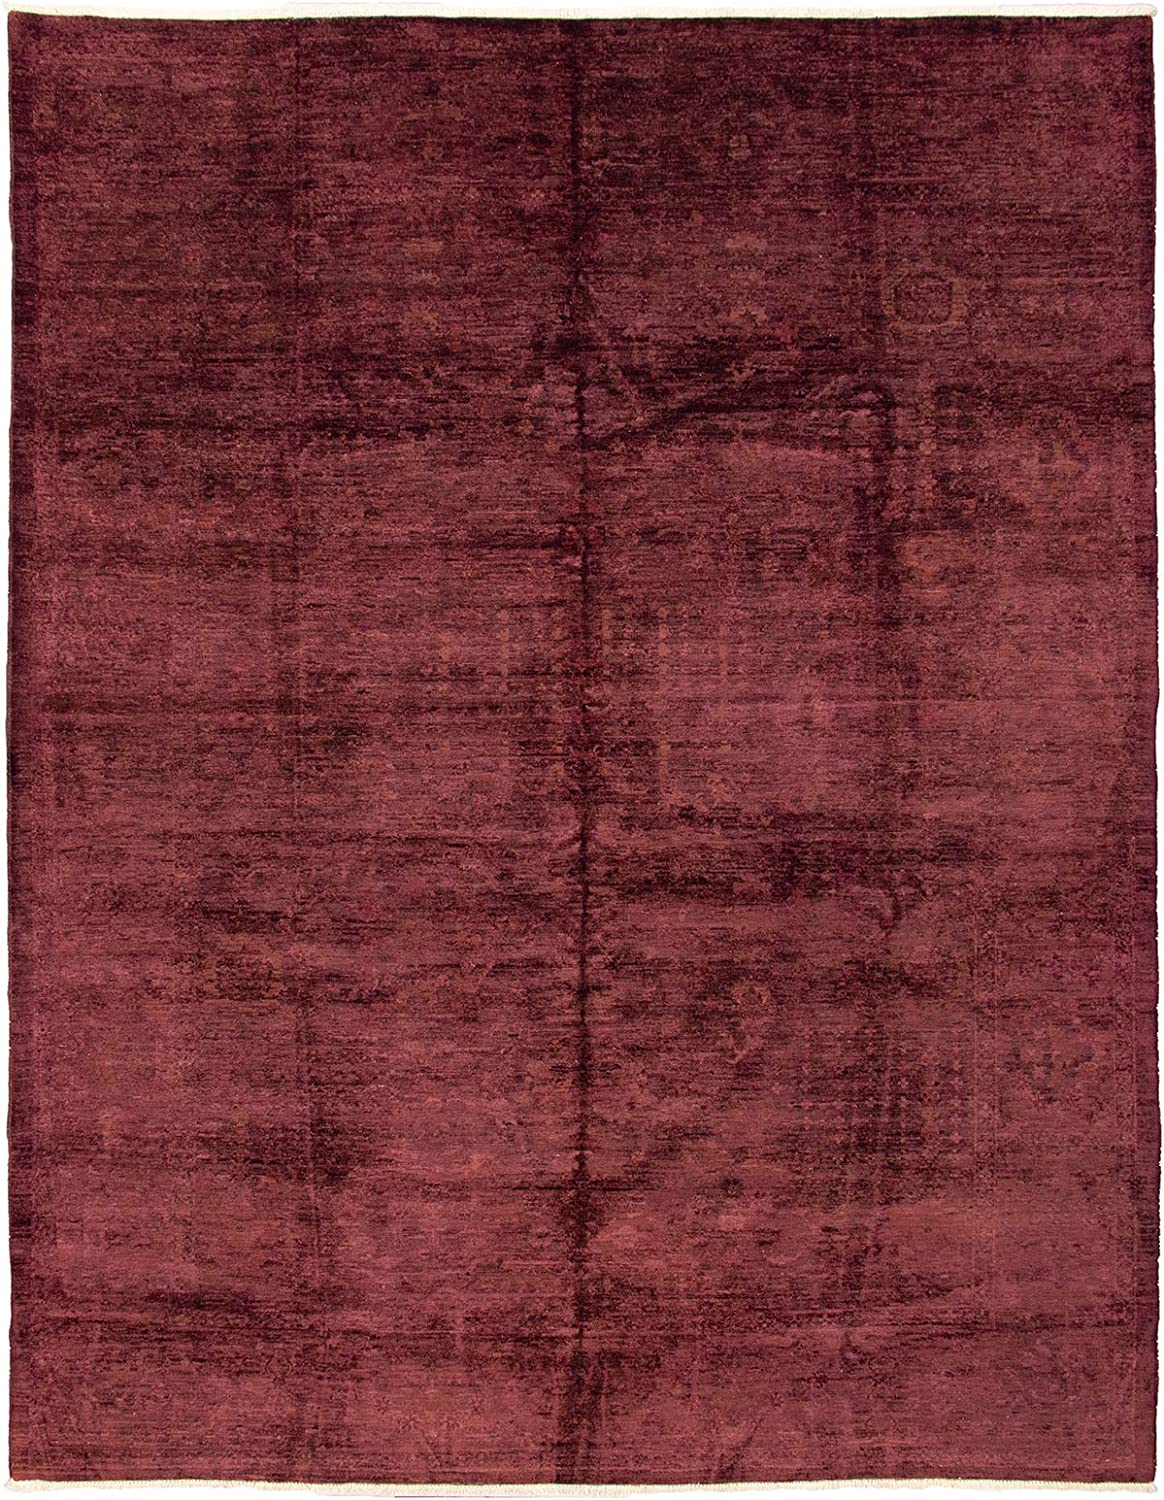 eCarpet Gallery Max 66% OFF Very popular! Large Area Rug Room Bedroom Living Hand-K for